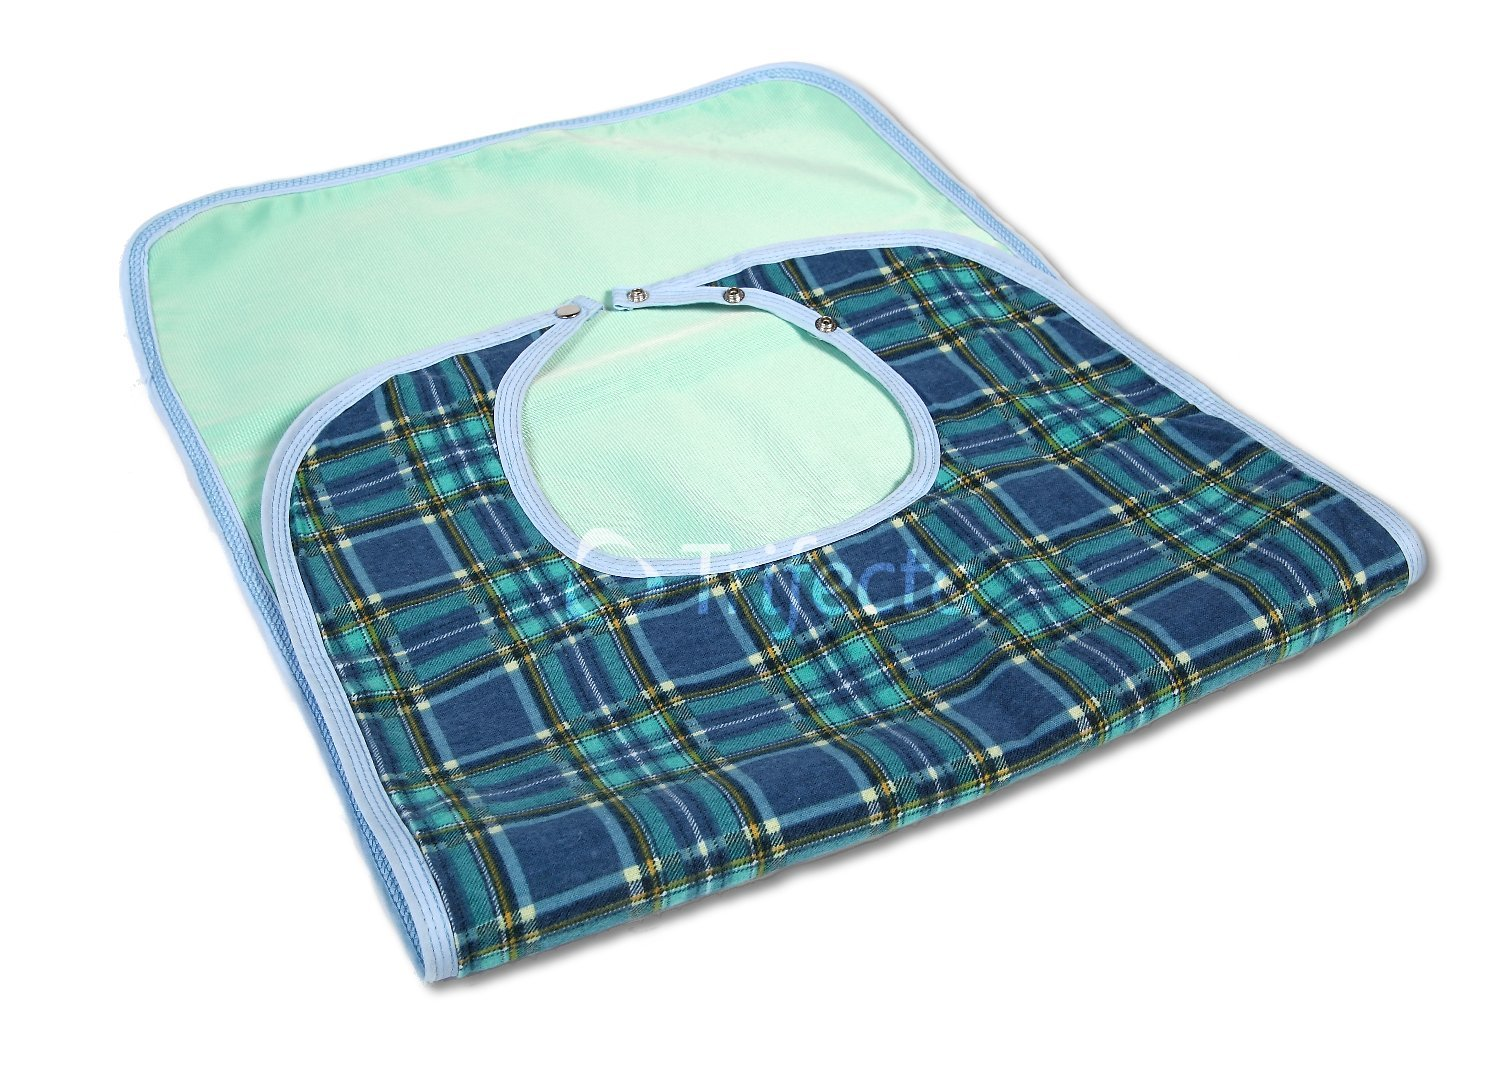 Large Extra Long, Washable Clothing Spill, Mealtime Protector, Waterproof Ladies & Men Adult Sized Bib 18x36 Green (Pk/4)